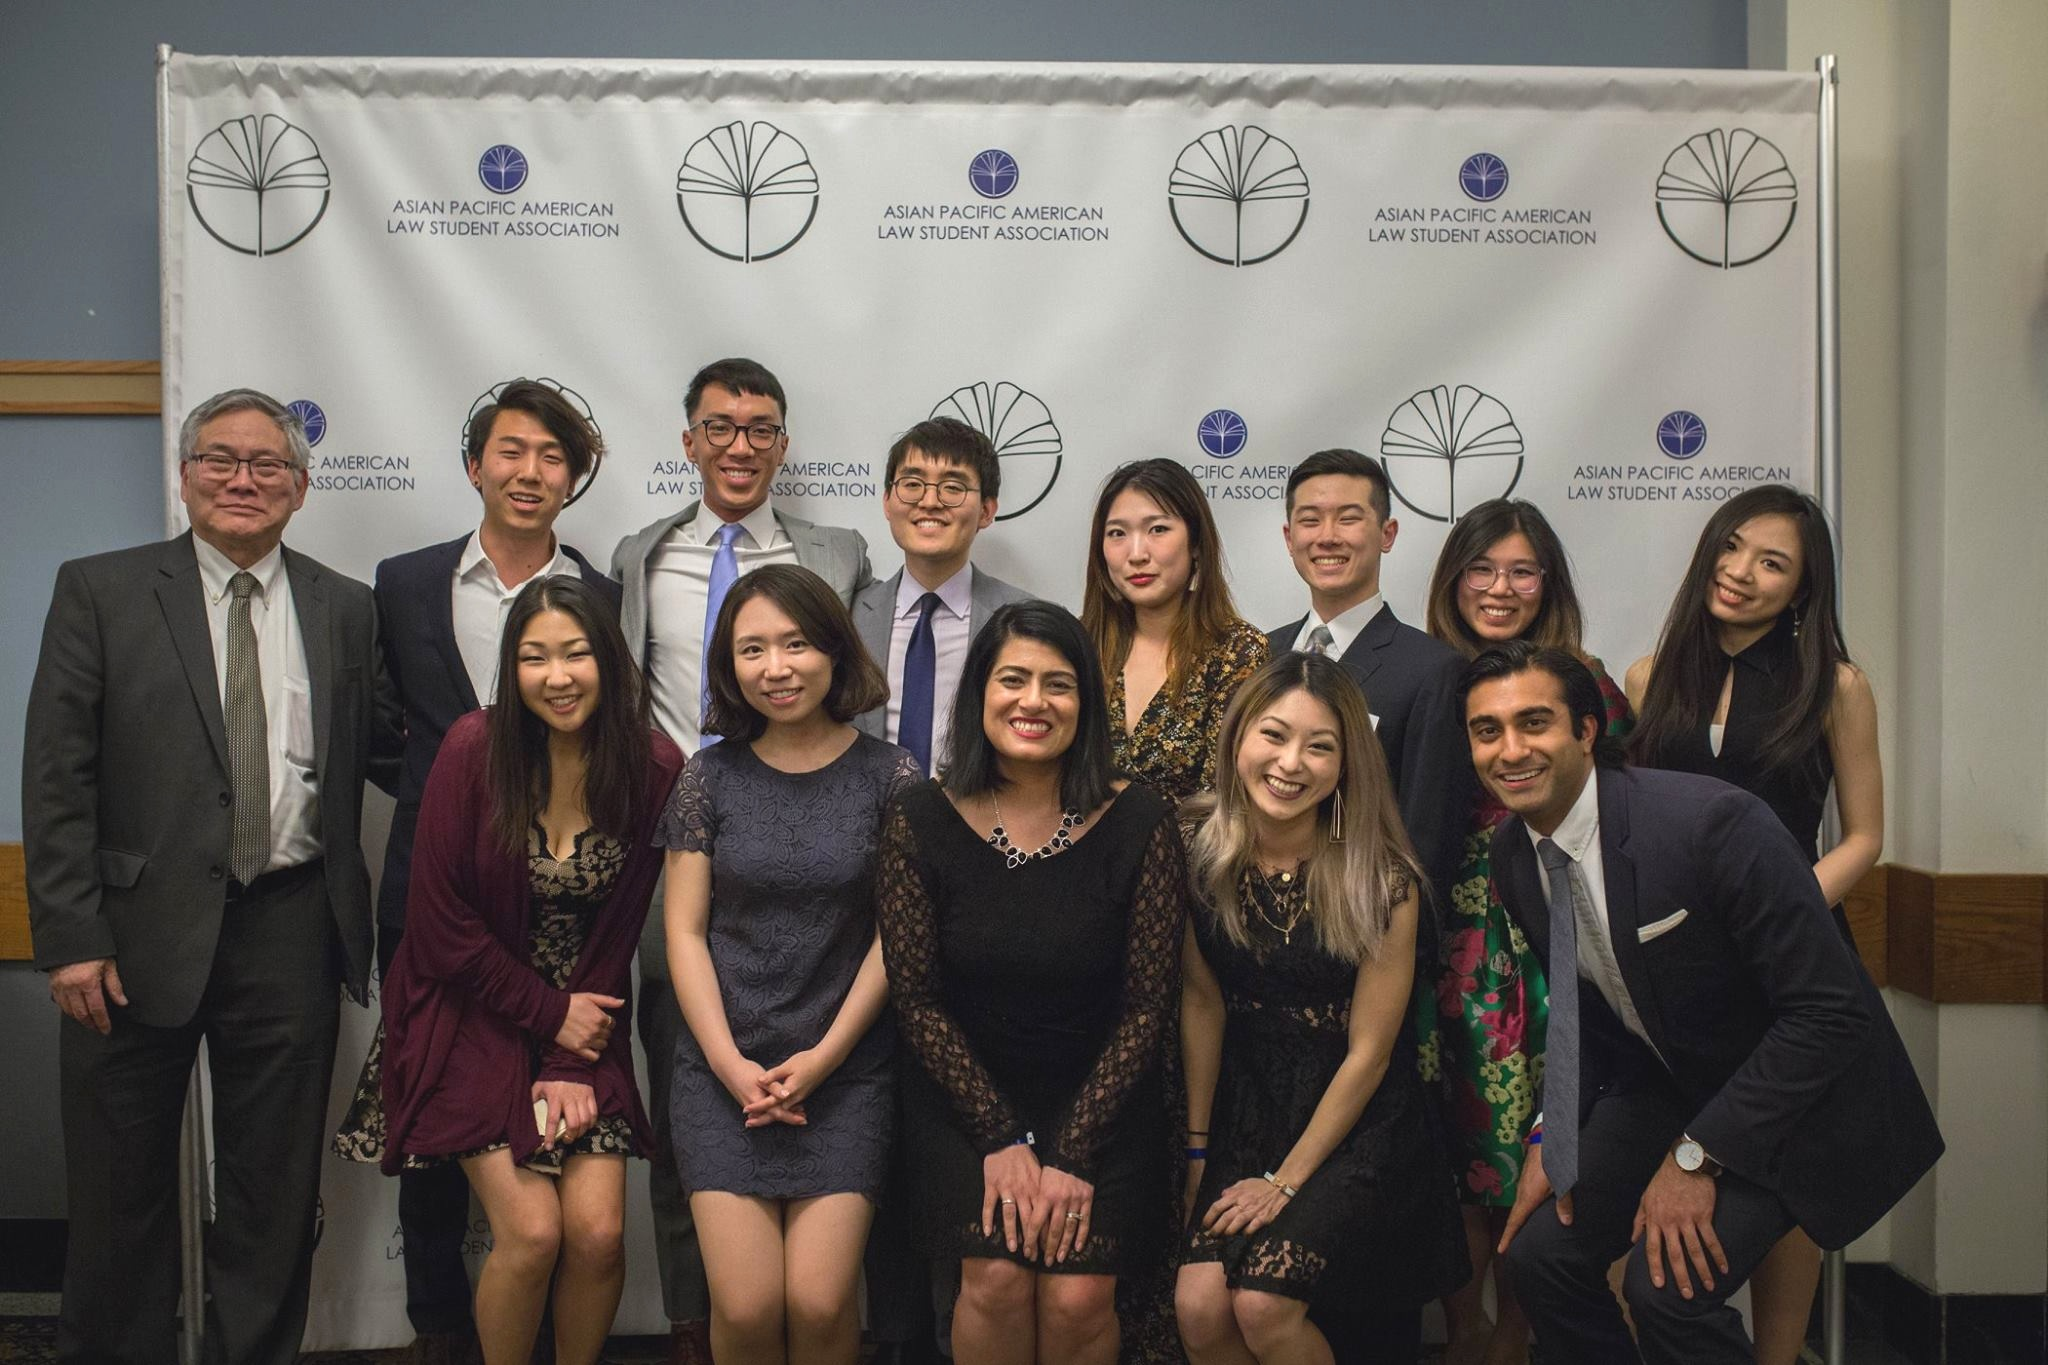 The Executive Board from 2017-2018 pictured with keynote speaker Professor Roland Hwang and Origins Banquet Founder Reena Bajowala '05 at the 2018 Origins Banquet.